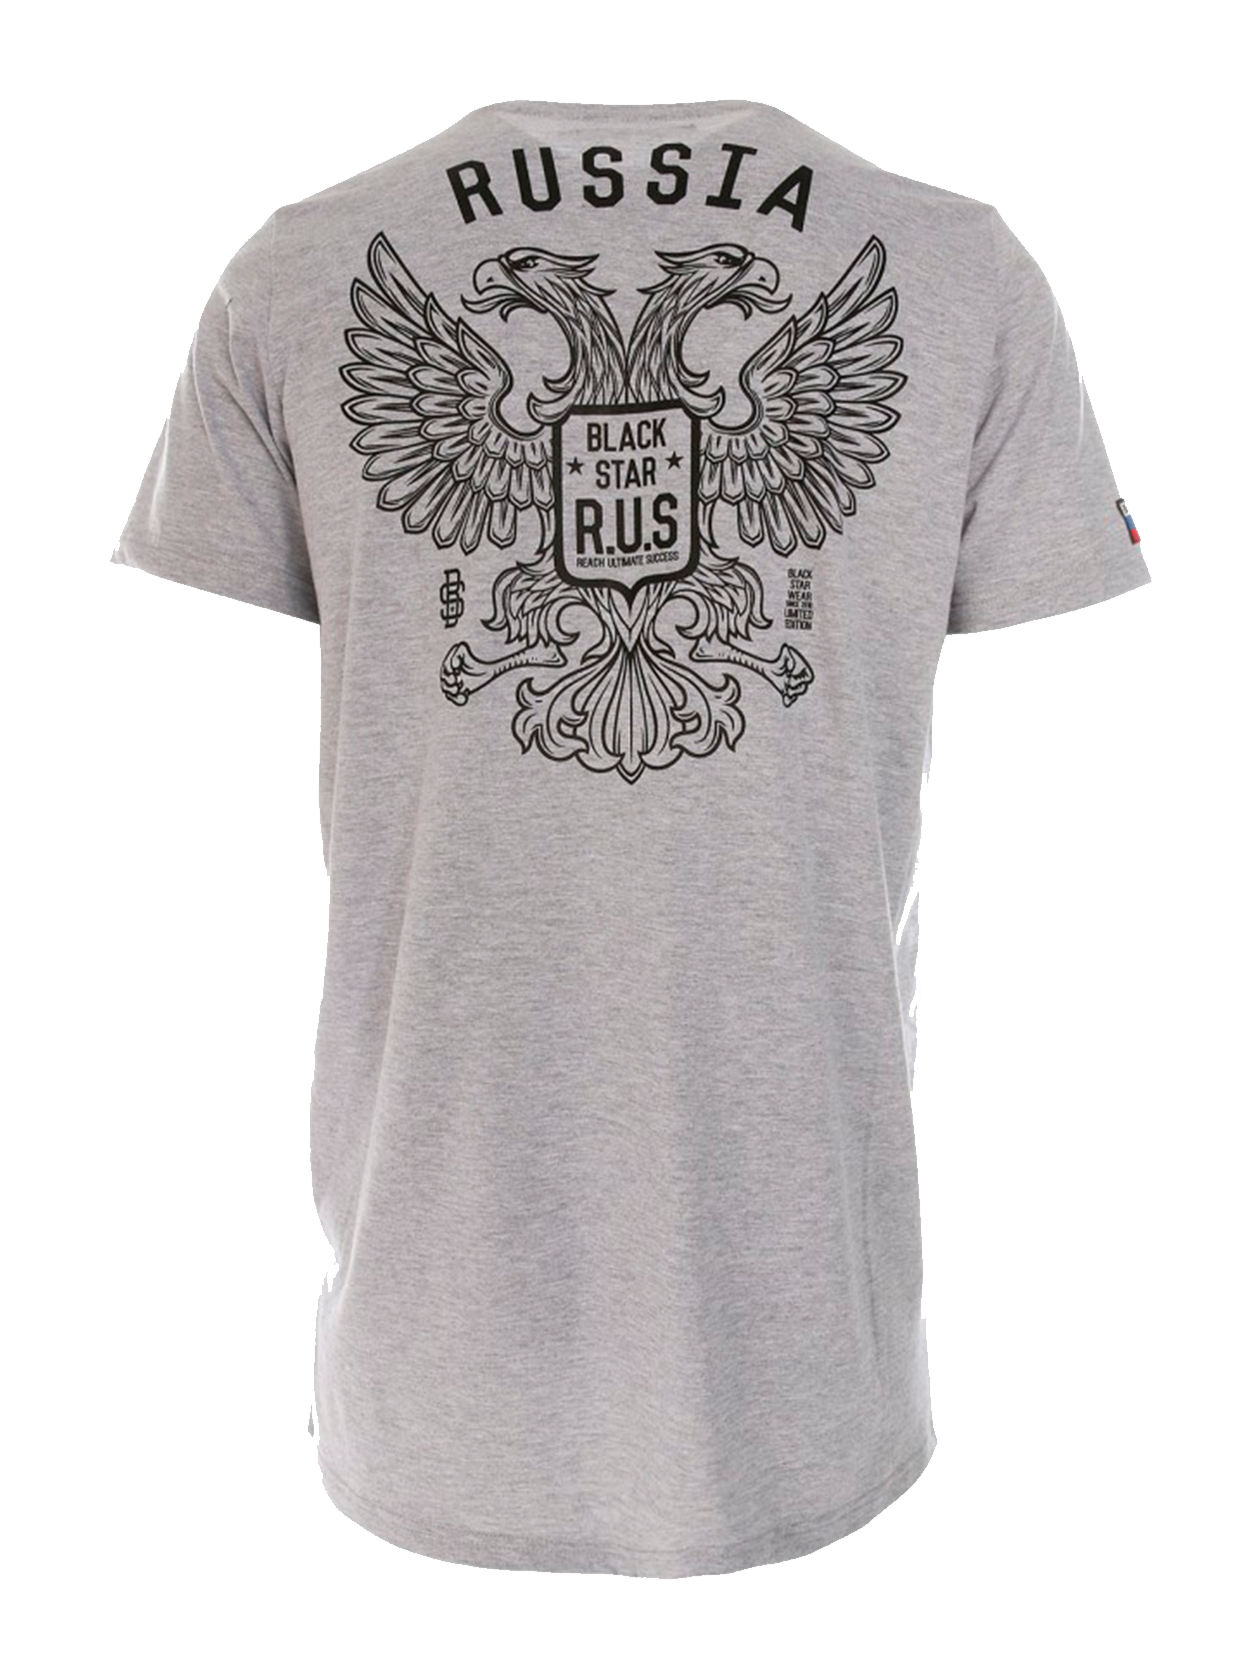 Mens t-shirt GERBMens t-shirt GERB by Black Star Wear. Crew neck, straight cut. Big white print of two headed eagle with brand identity and small Black Star R.U.S. (Reach Ultimate Success) on the front. Russian tricolor patch on the right sleeve. Avaliable in black, gray and white.<br><br>size: XS<br>color: Grey<br>gender: male